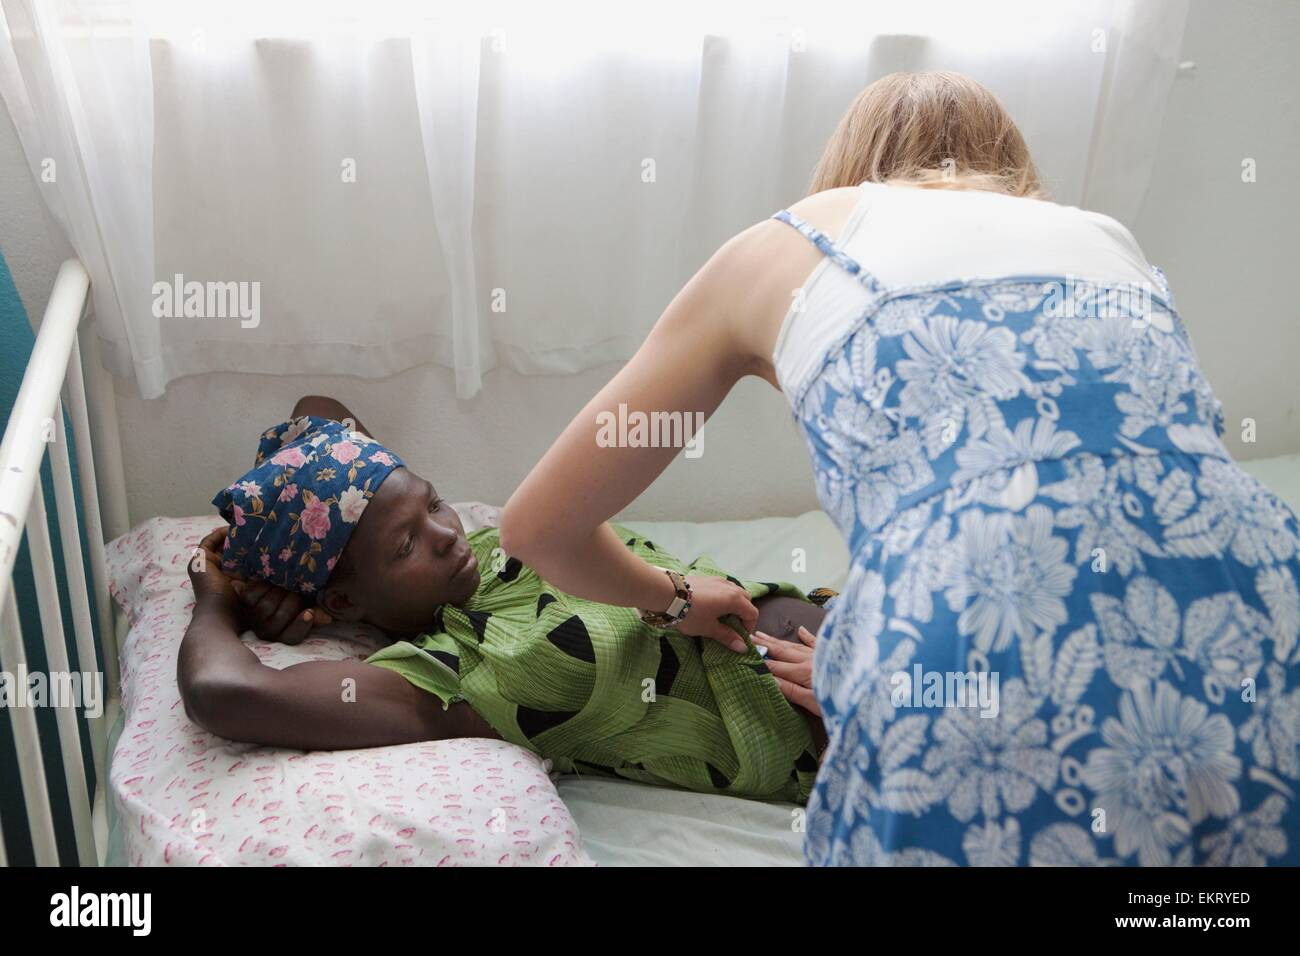 A Girl Being Cared For By A Medical Worker; Manica, Mozambique, Africa - Stock Image